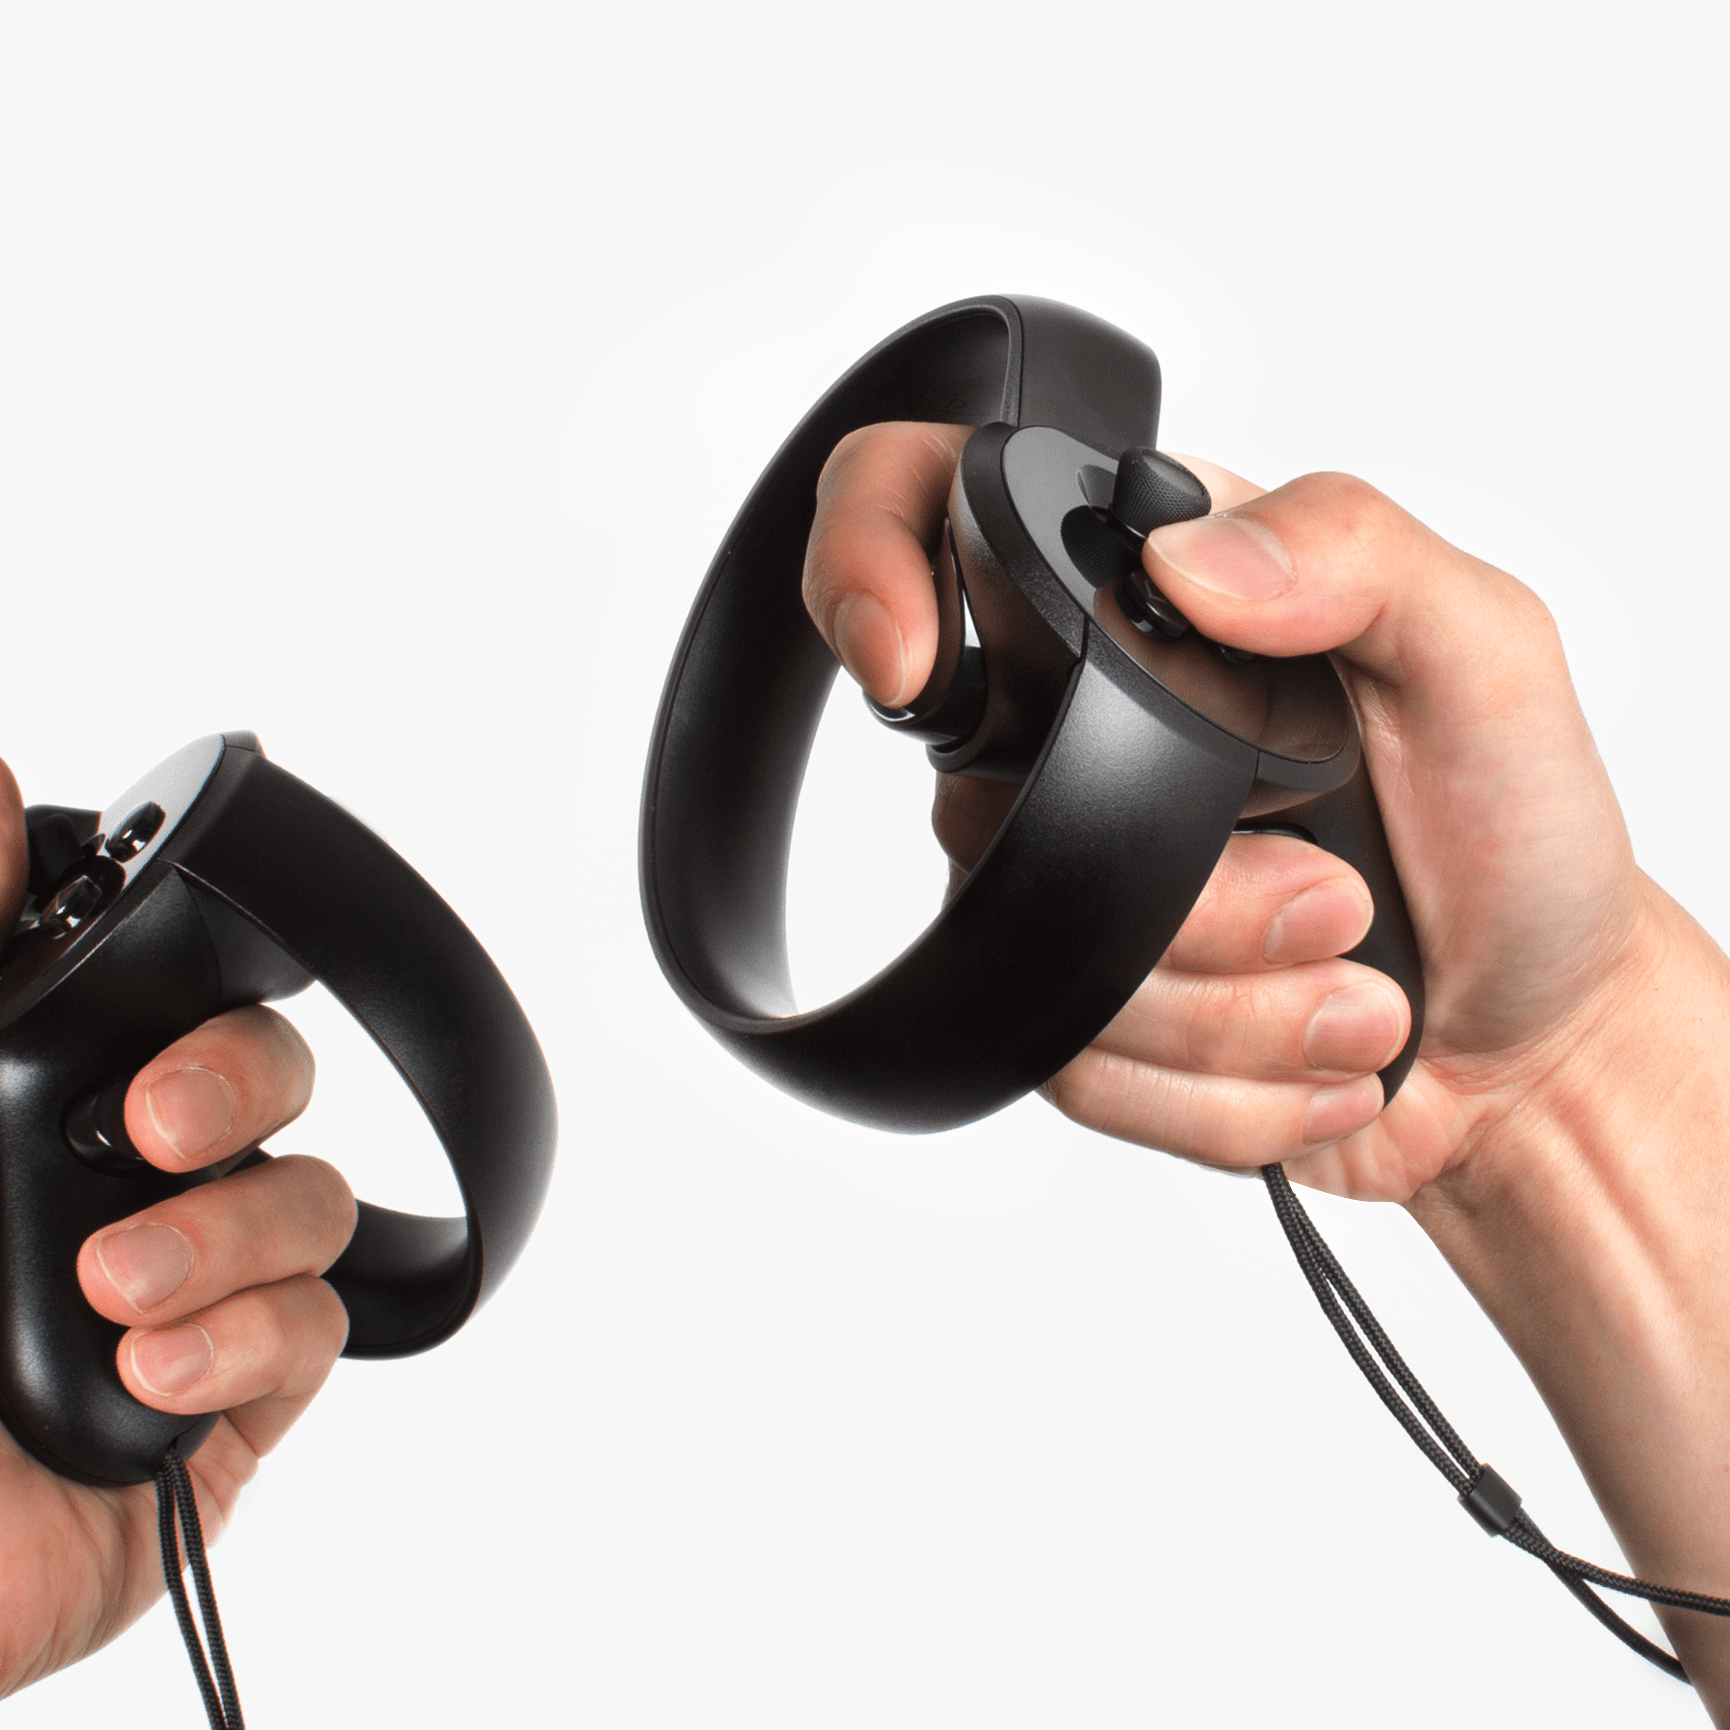 What is Oculus Touch?